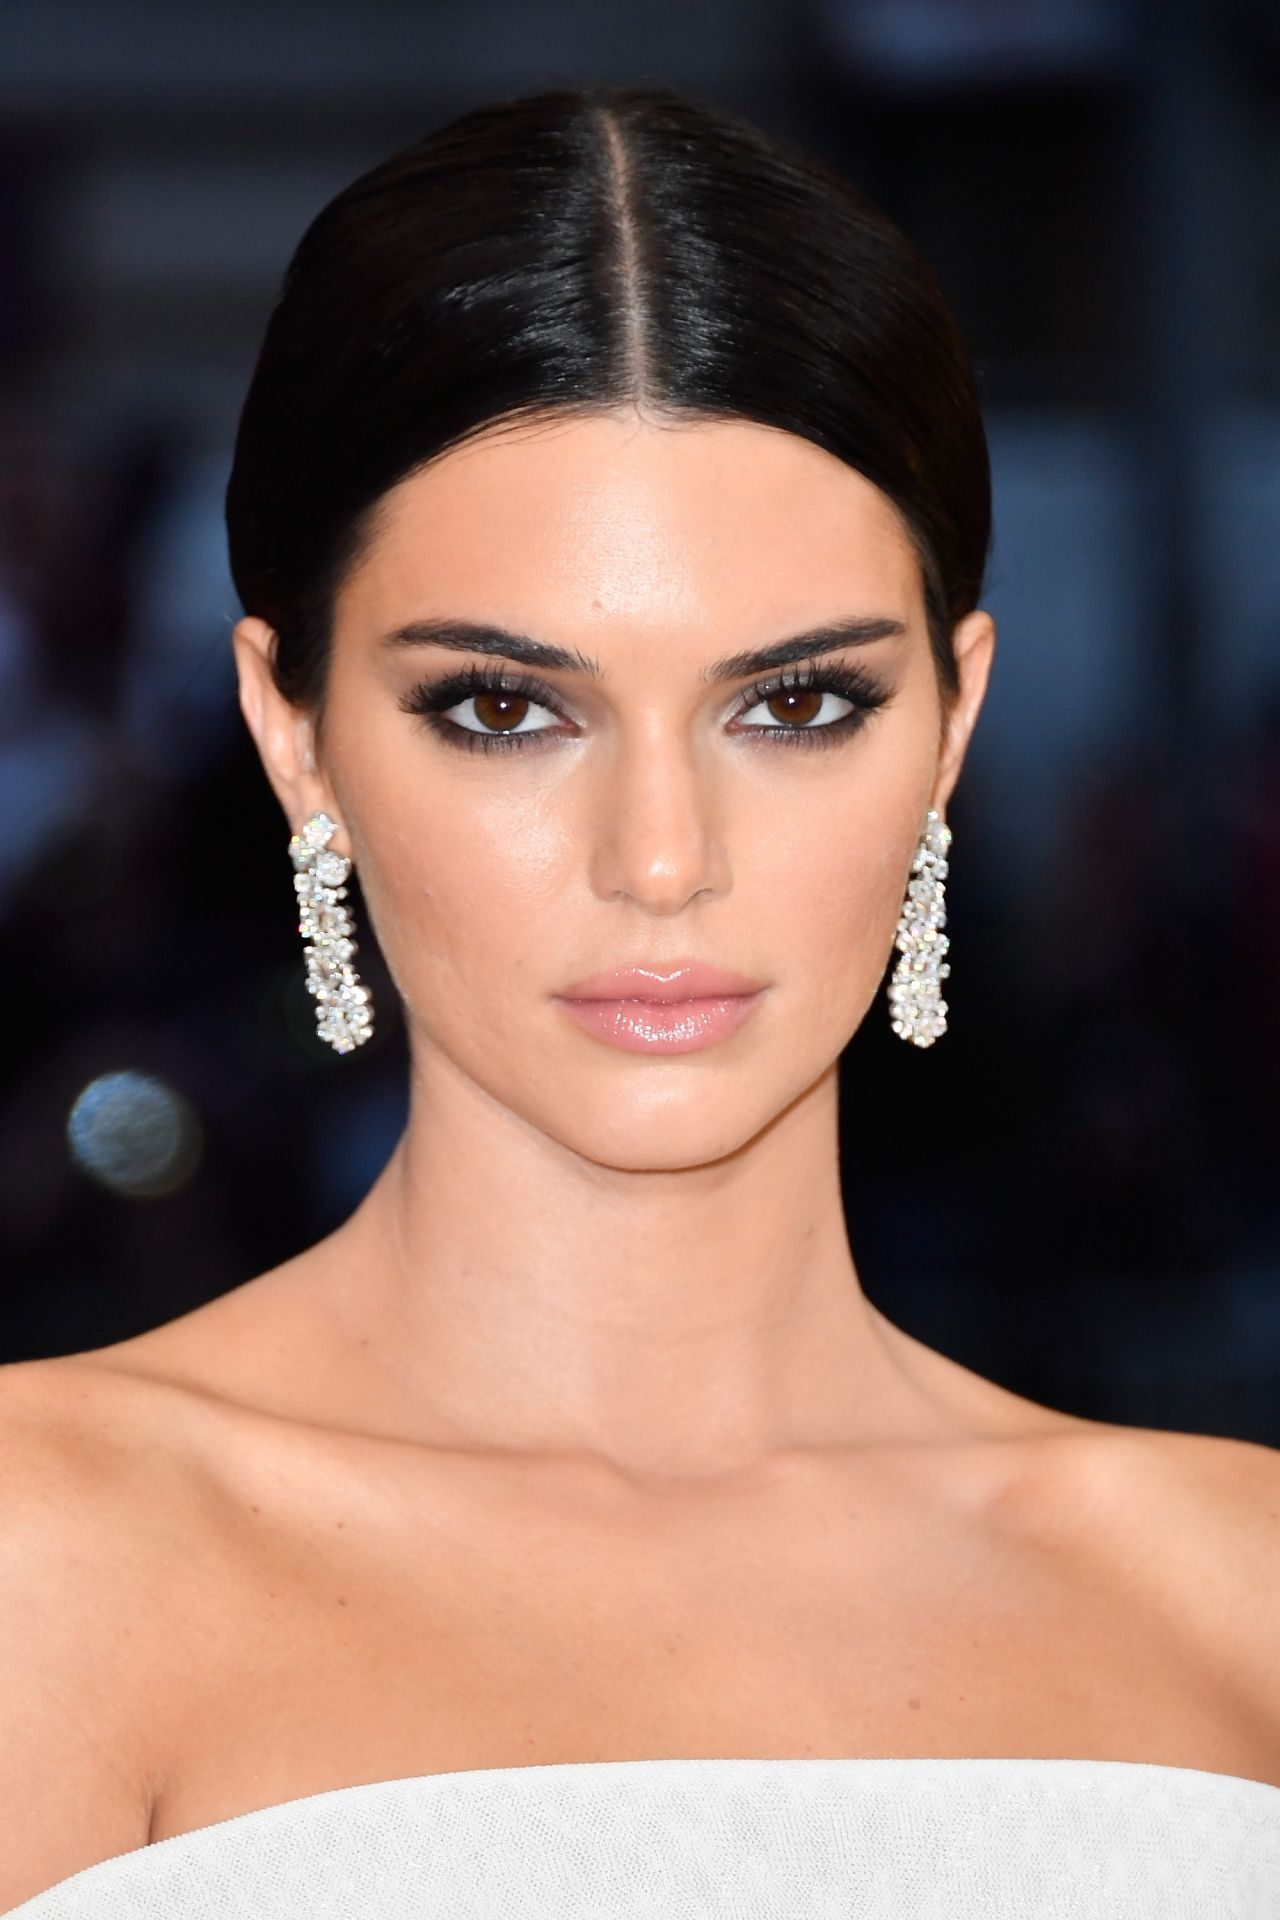 kendall jenner - photo #18